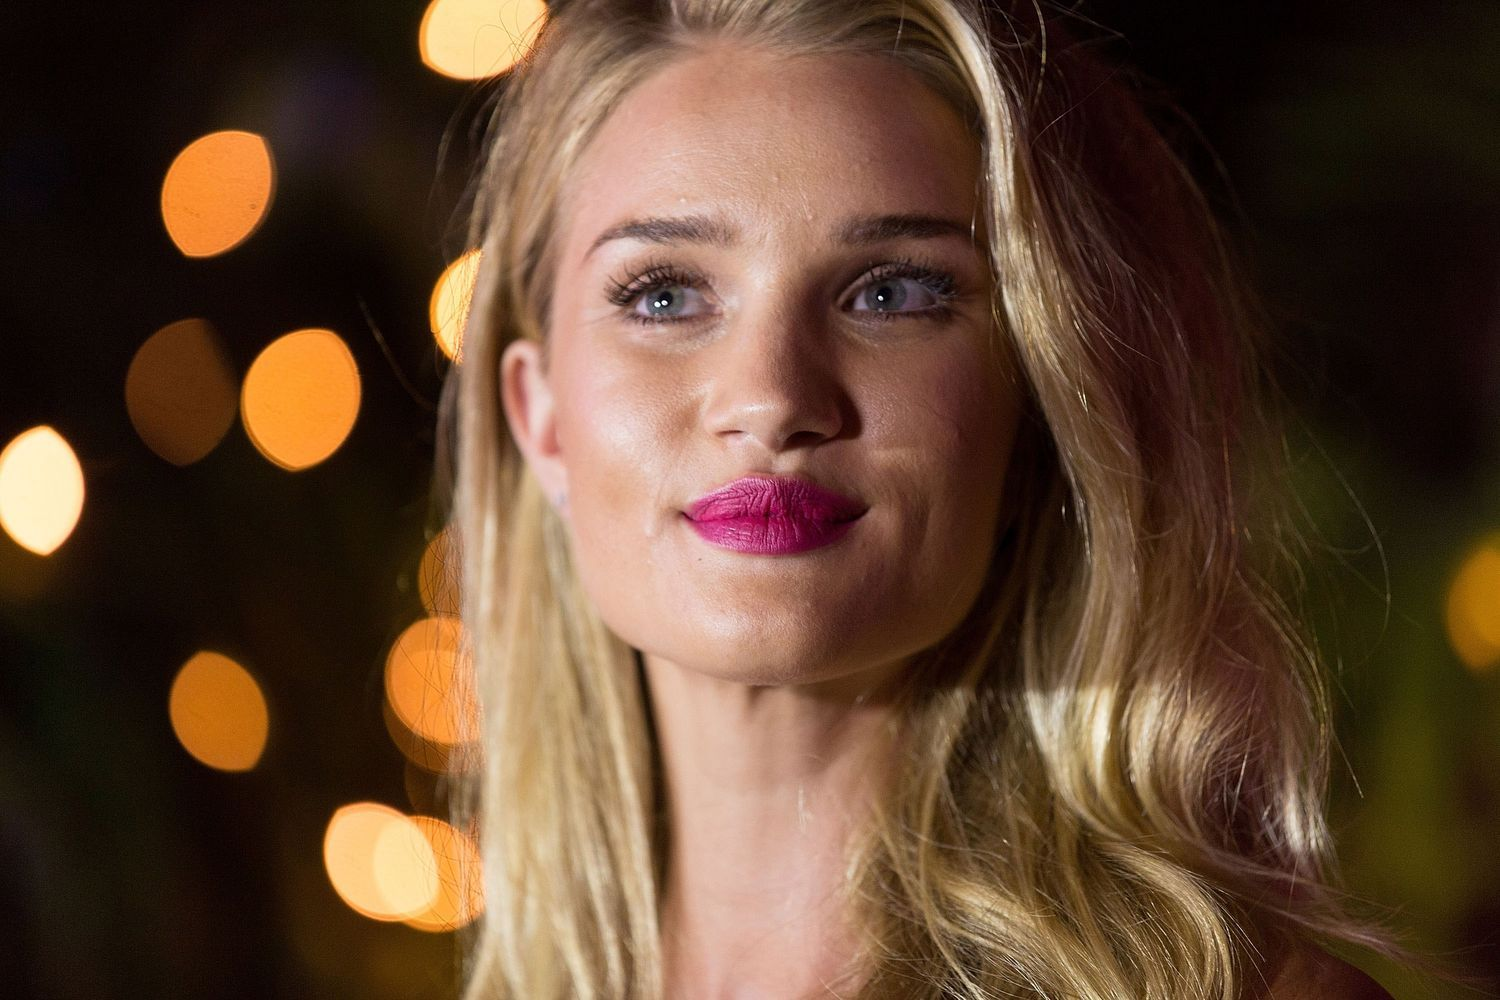 We Need to Pause and Appreciate the Spectacular Lipstick Moment Rosie Huntington-Whiteley Just Had